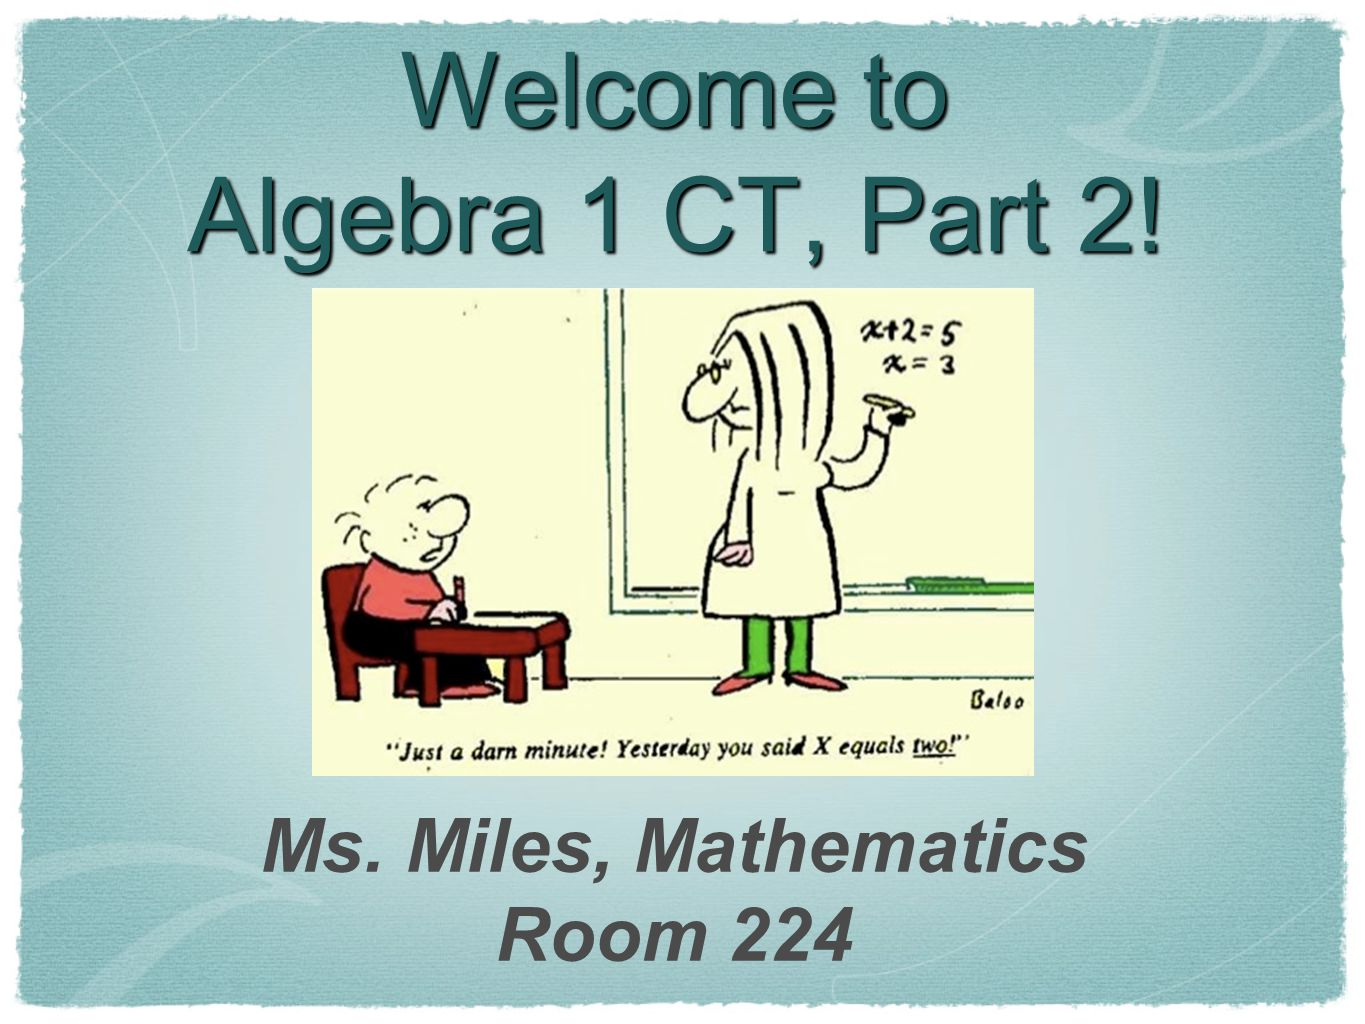 Welcome to Algebra 1 CT, Part 2! Ms. Miles, Mathematics Room 224